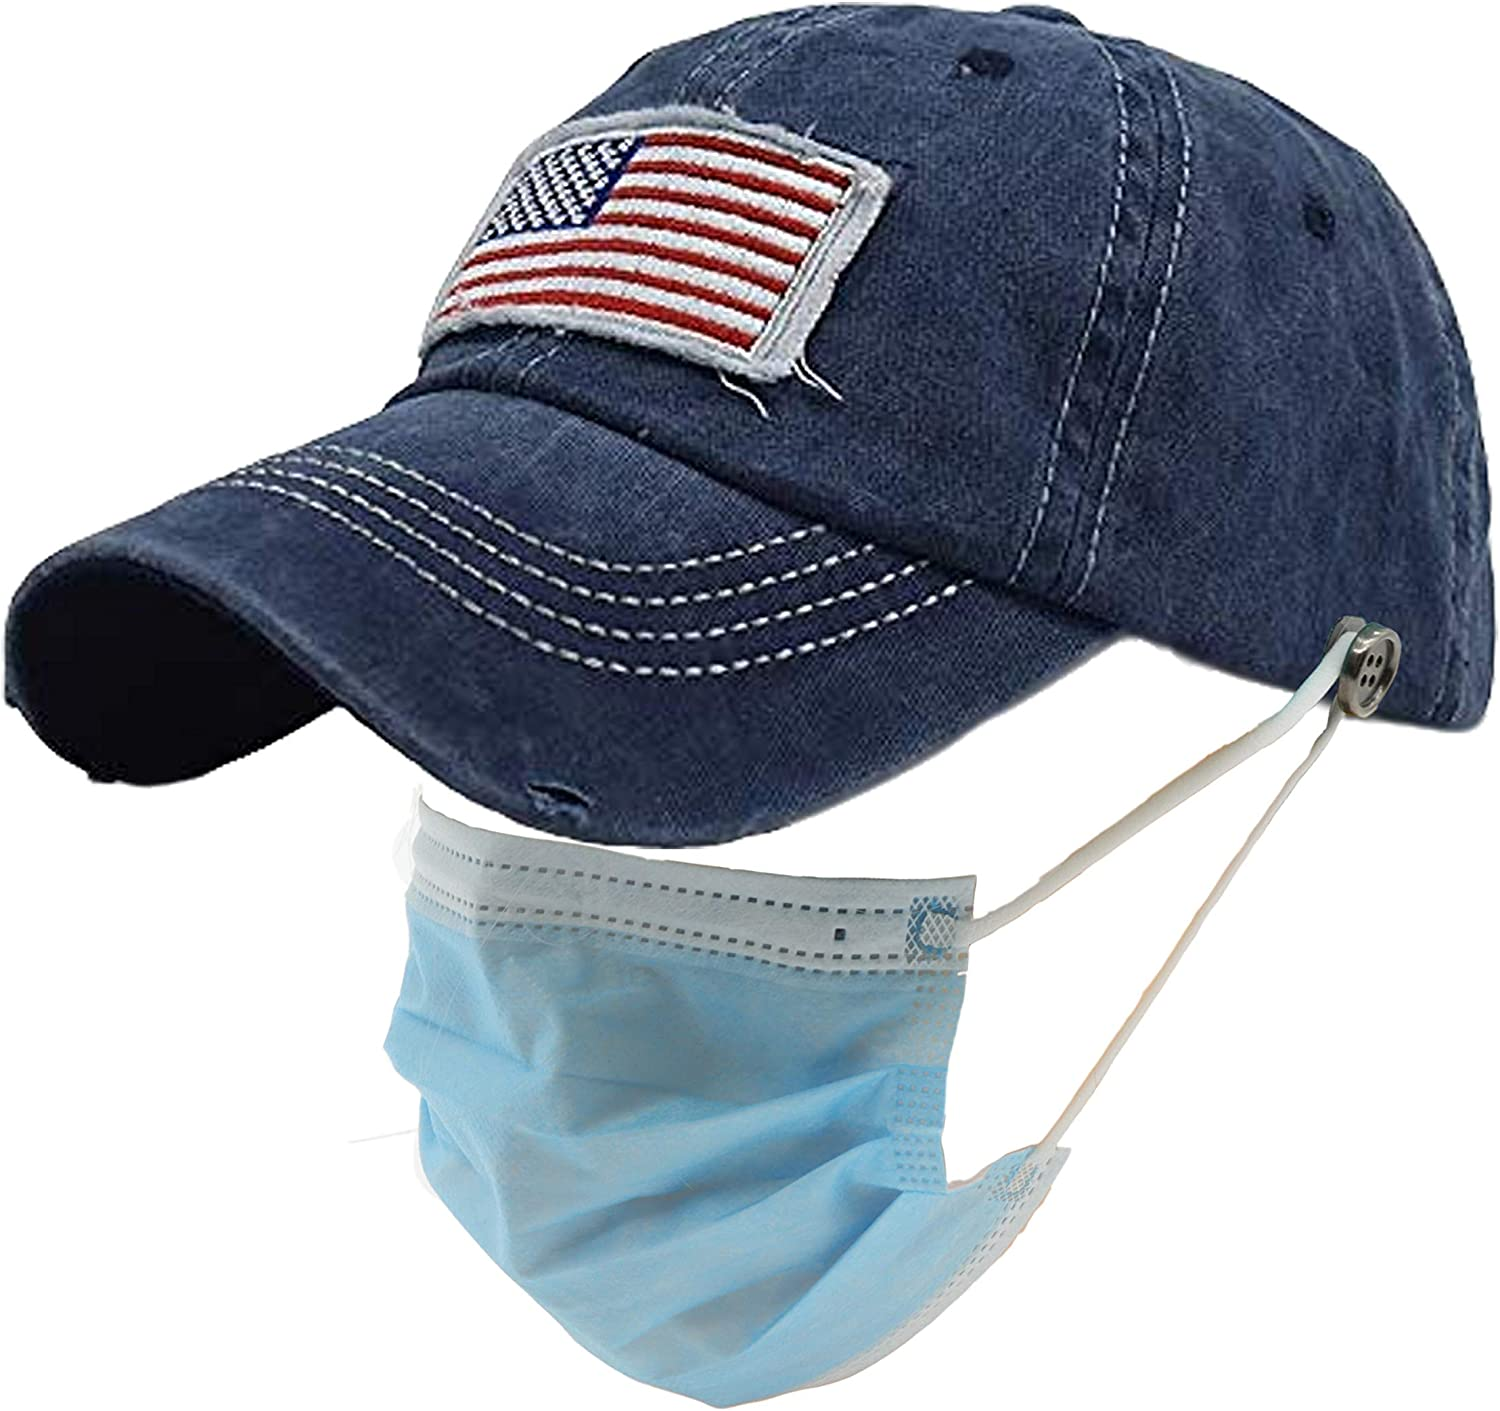 American Flag Star Patch Embroidered Ponytail Hat for Women Washed Distressed Baseball Cap with Button for Mask